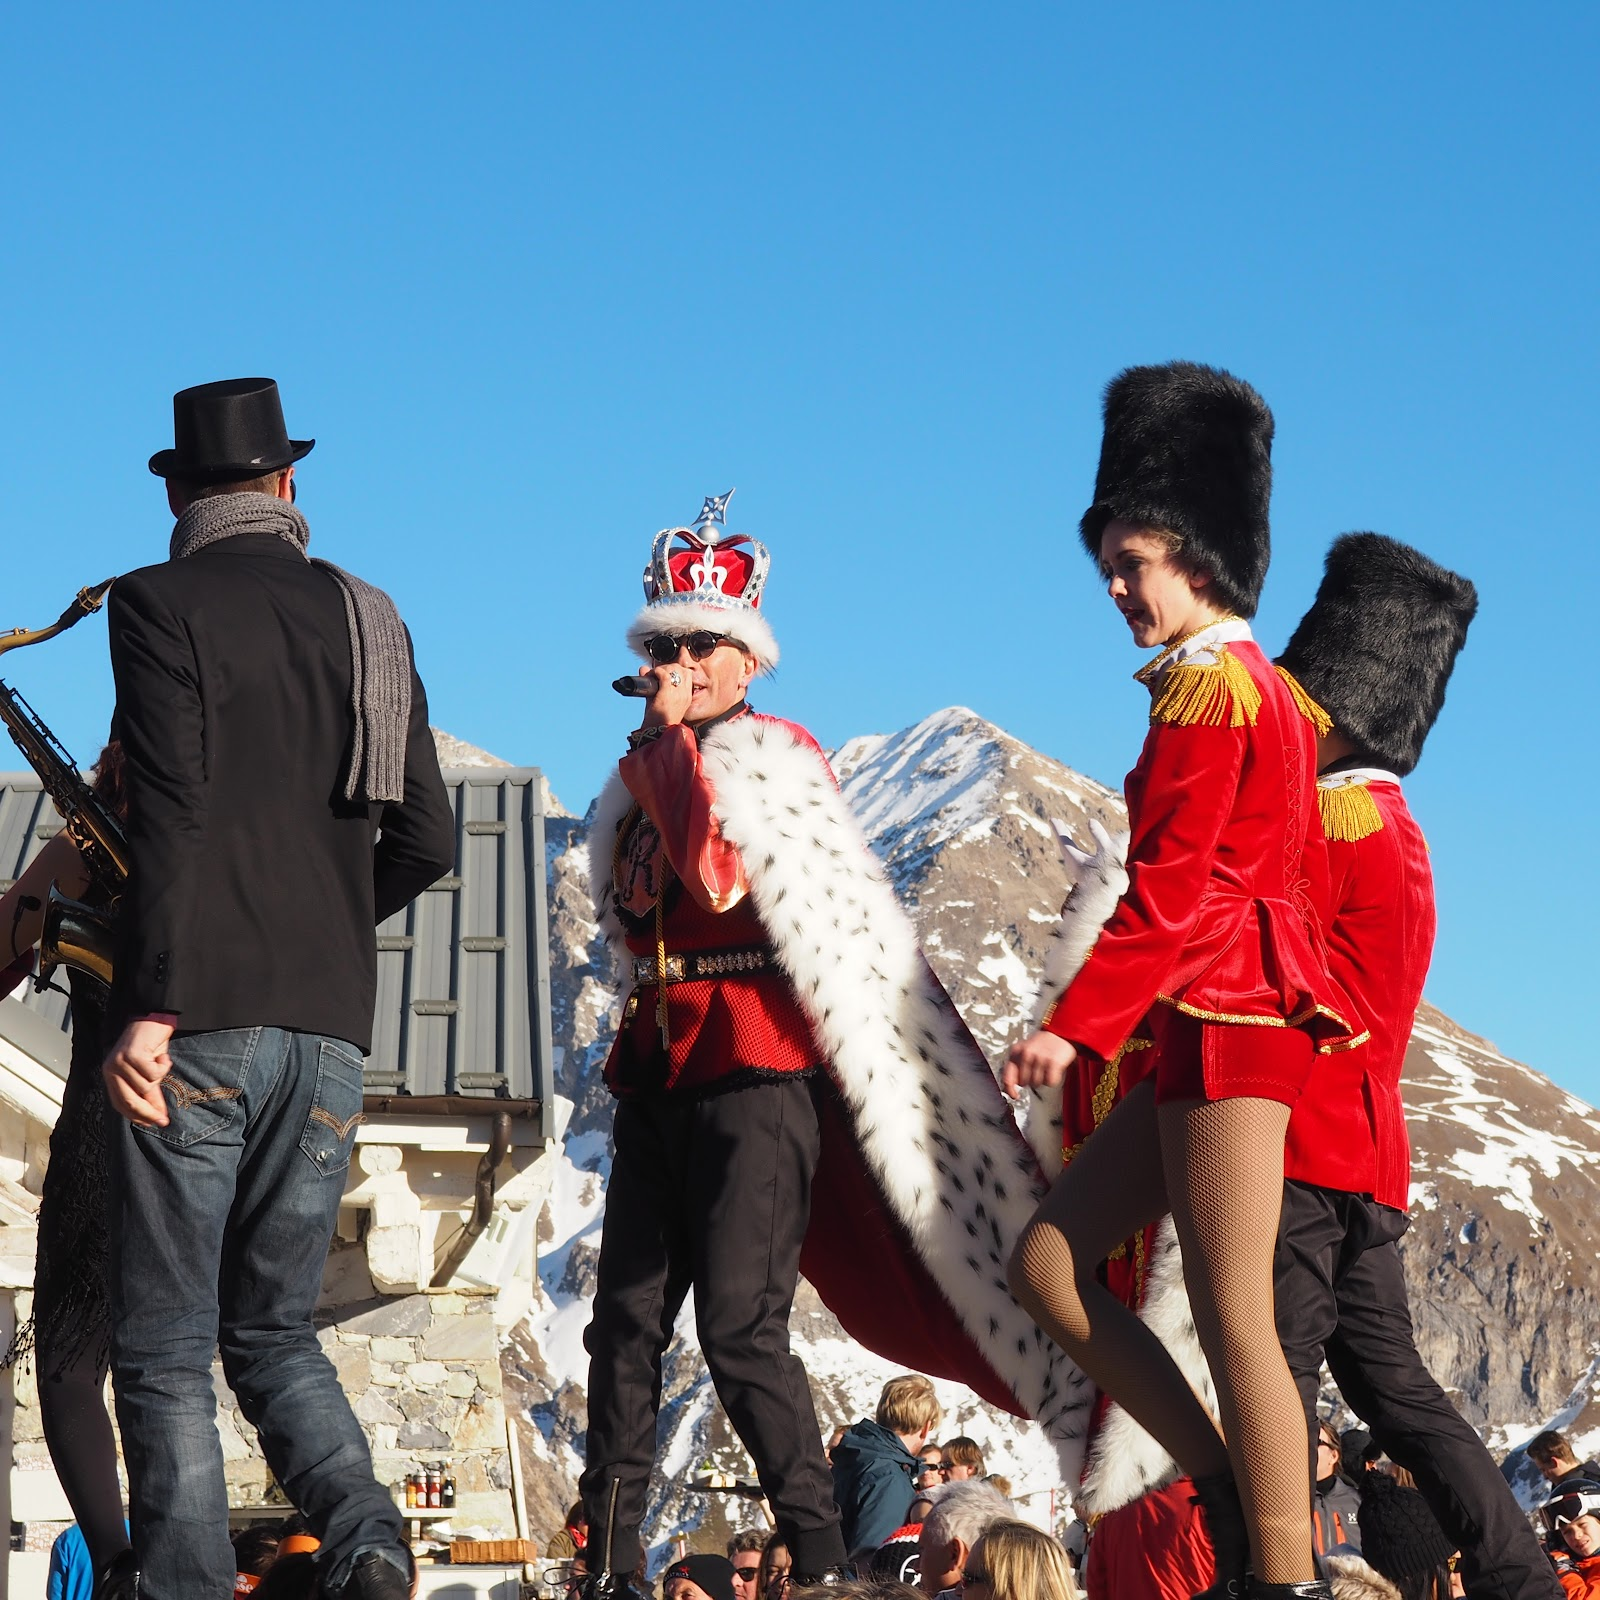 Kelly Starlight at La Folie Douce, Val d'Isere, France